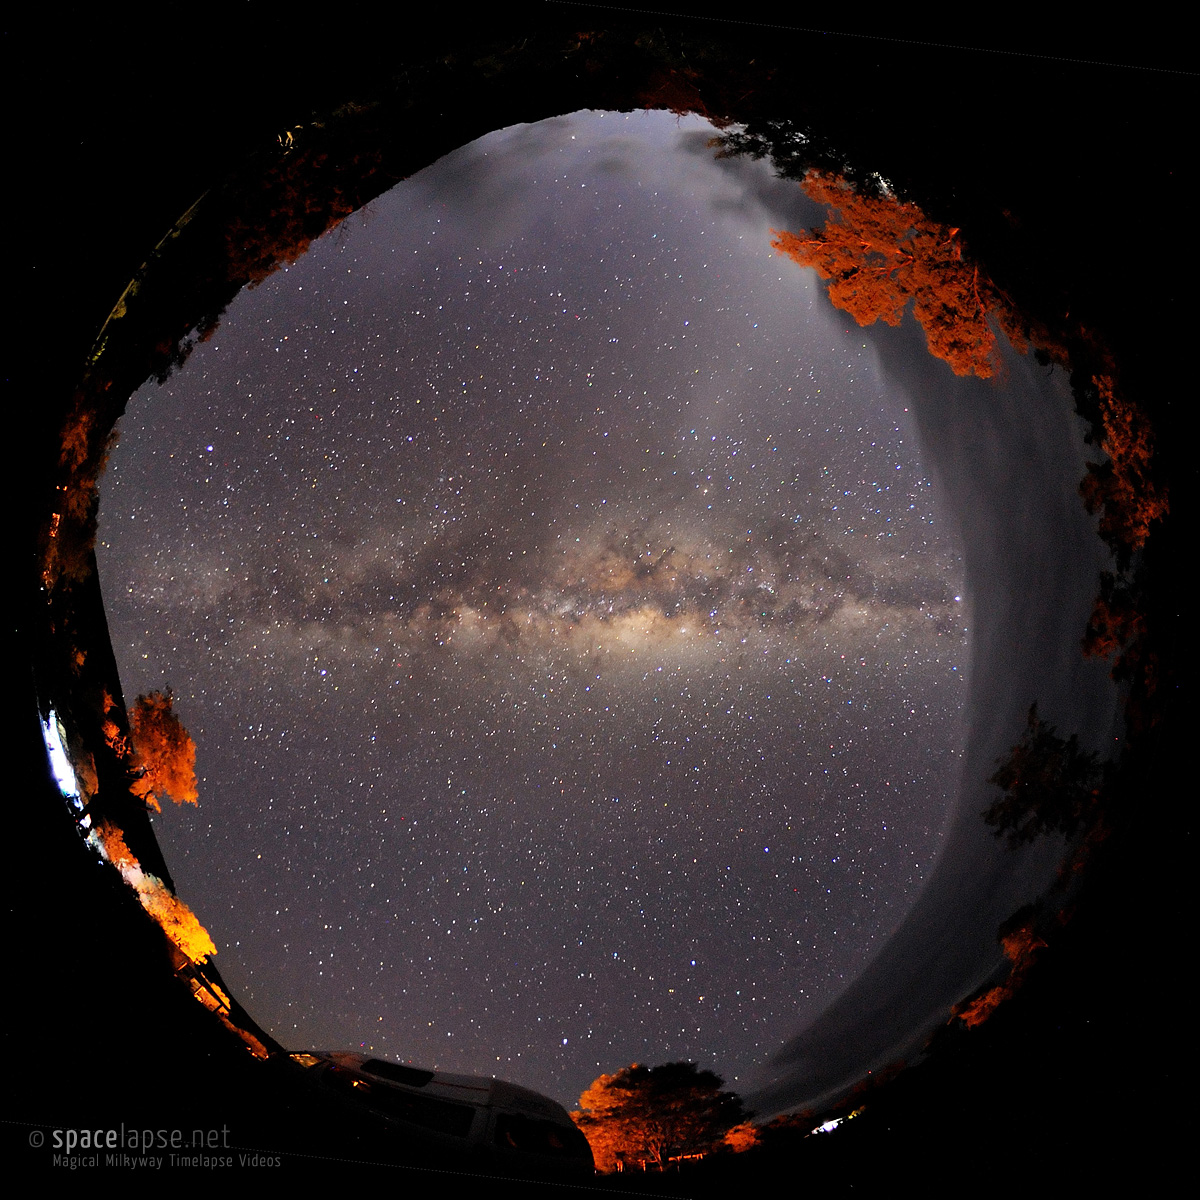 Australia's whole nightsky - Die milky way divides the night sky into two parts